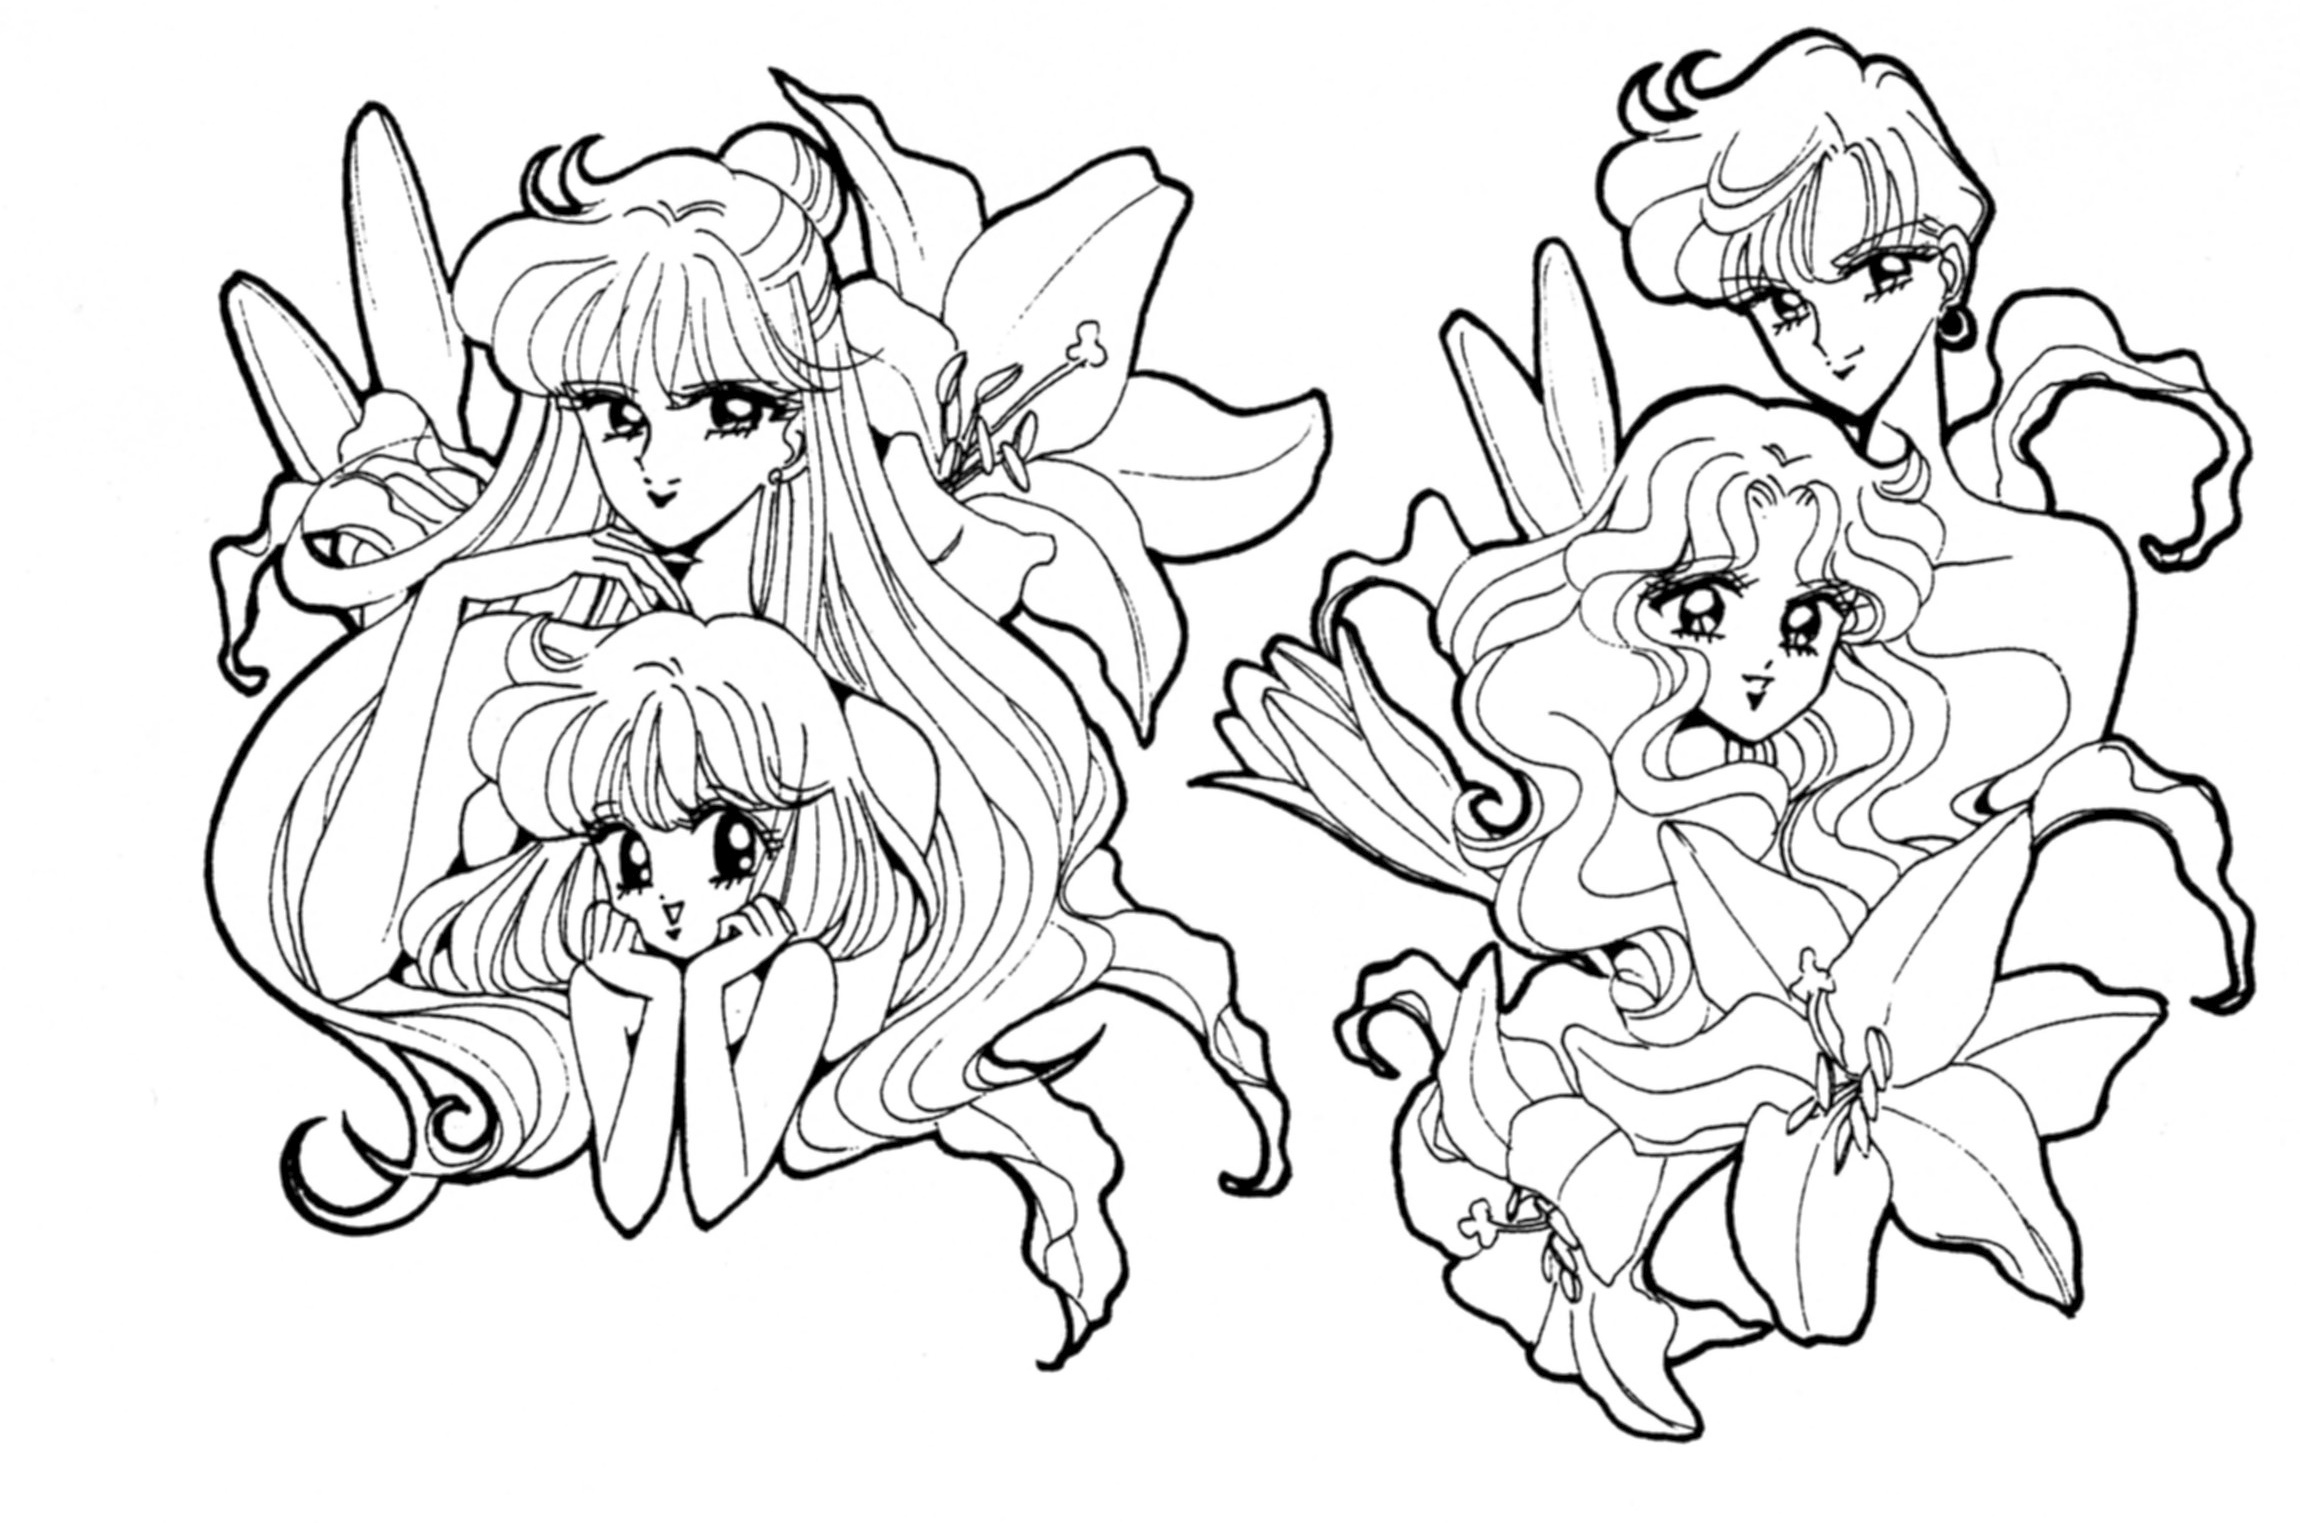 Outstanding Sailor Mini Moon Coloring drawing and coloring for kids